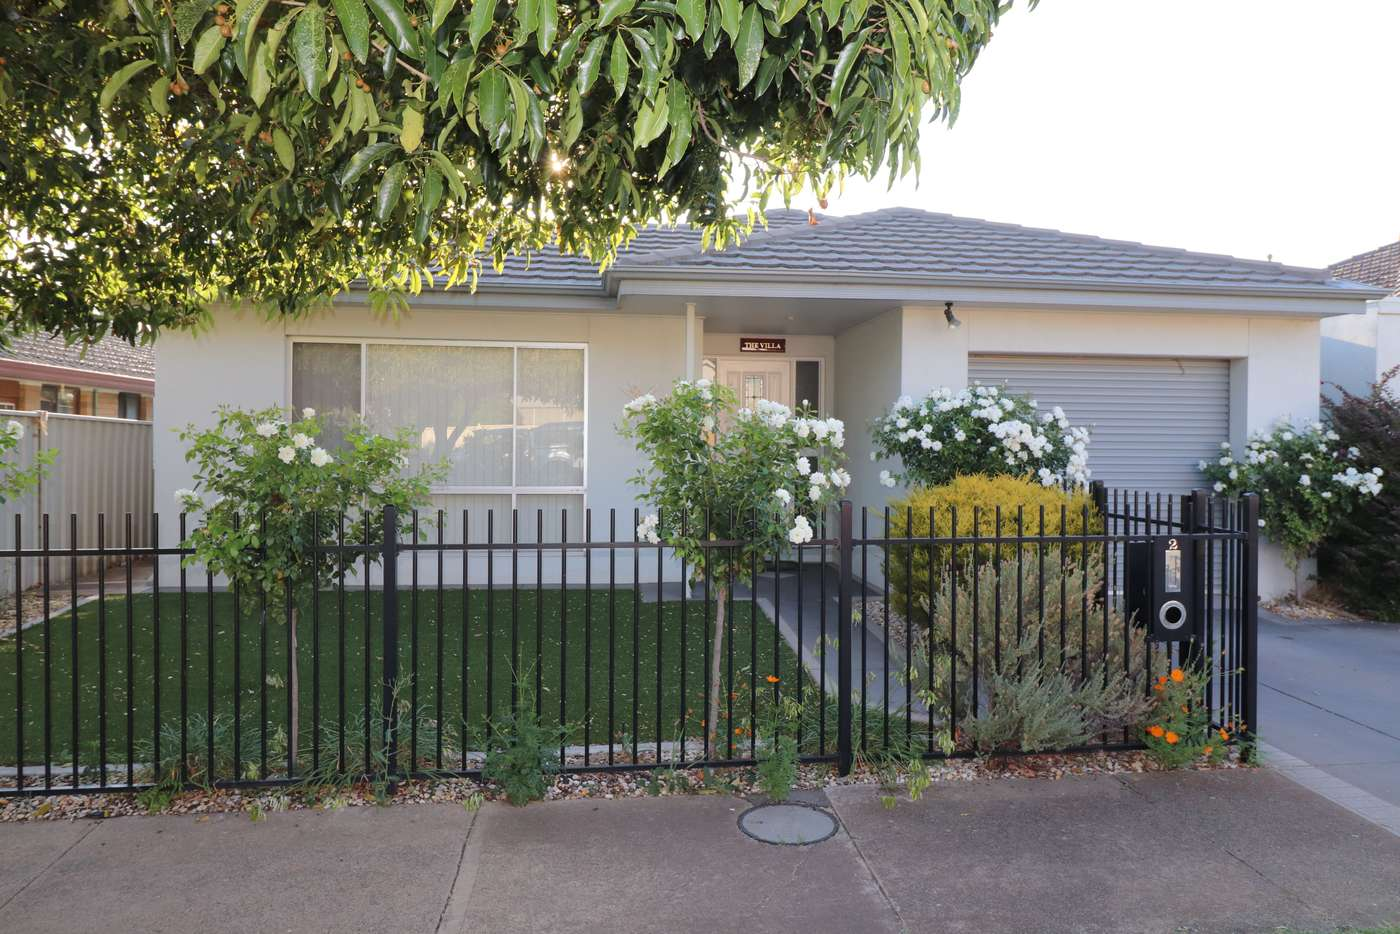 Main view of Homely house listing, 2 Gillespie Street, Kyabram VIC 3620